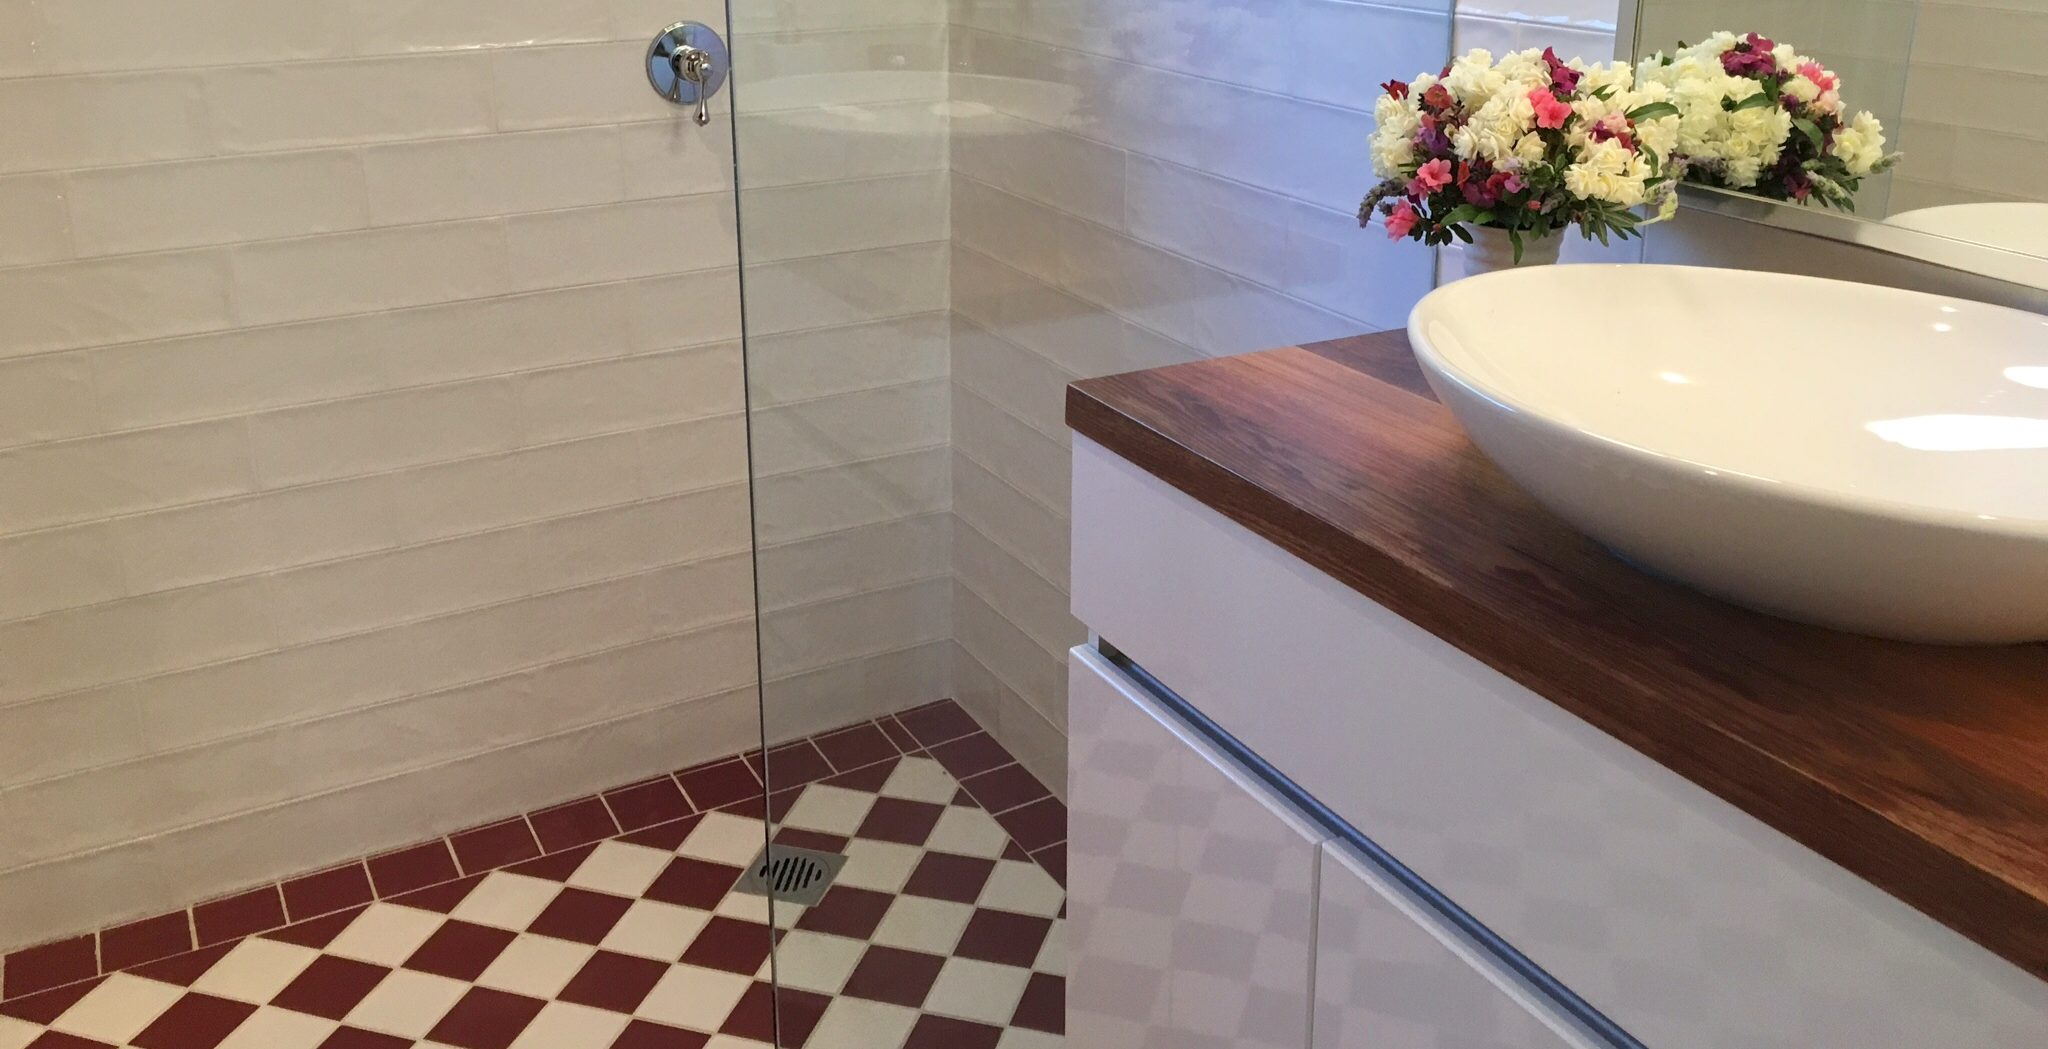 Stunning above counter bowl with timber top vanity with federation tiling. Bathroom renovation by Master Bathrooms & Kitchens